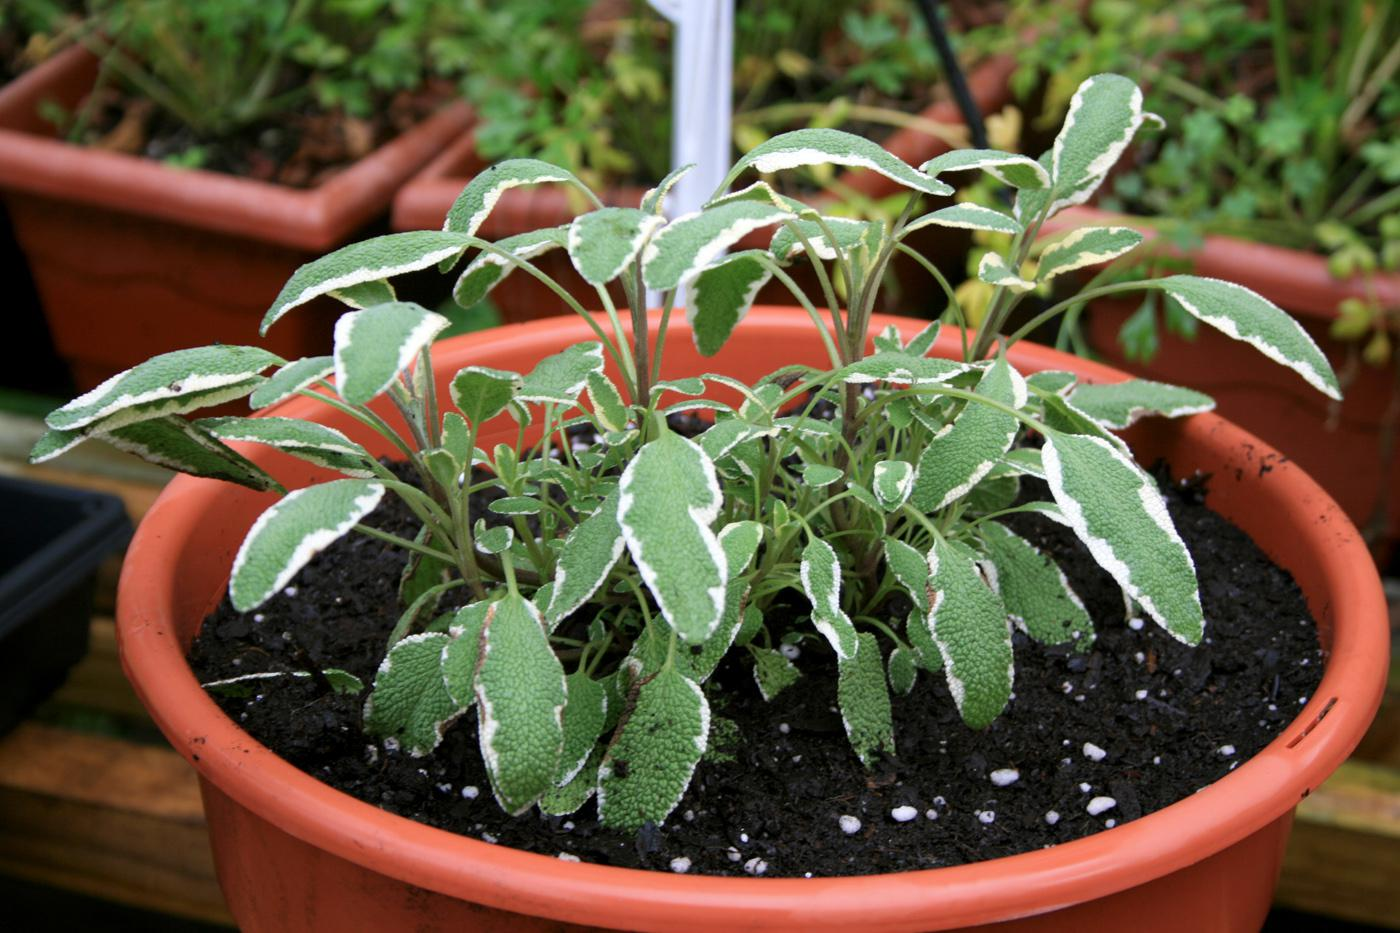 The green leaves with white margins of Tricolor, a type of sage, make it an attractive choice for a fall herb garden. (Photo by Gary Bachman)